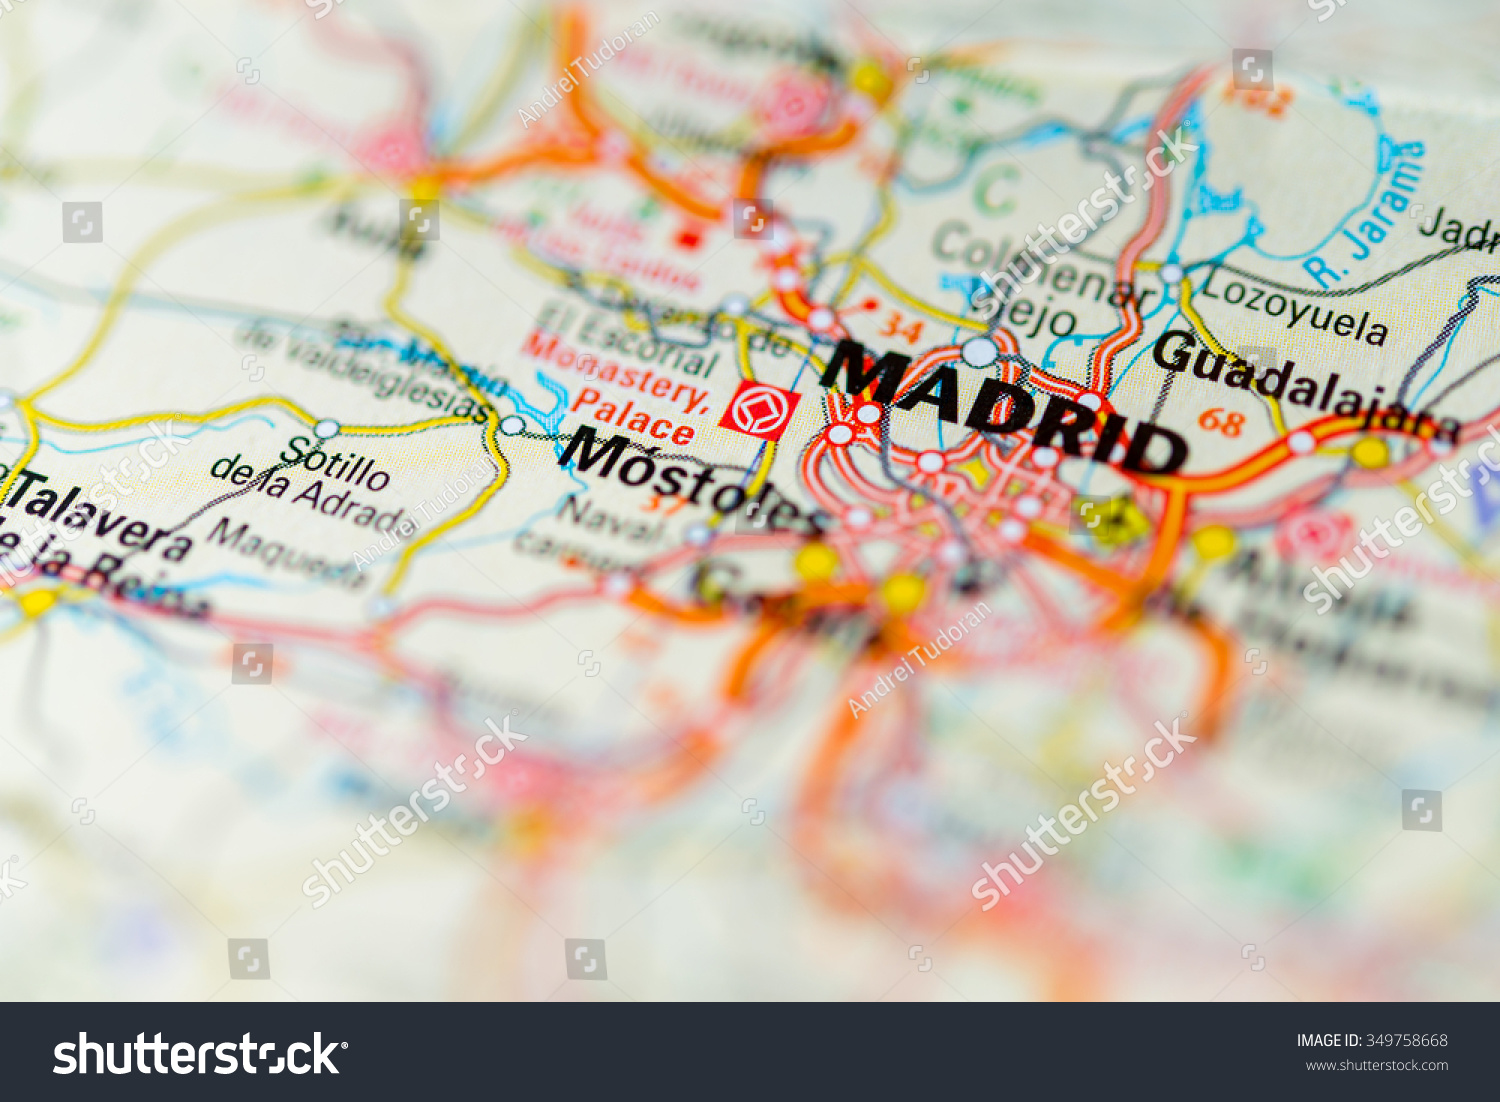 Macro View Madrid Spain On Map Stock Photo (Royalty Free) 349758668 ...